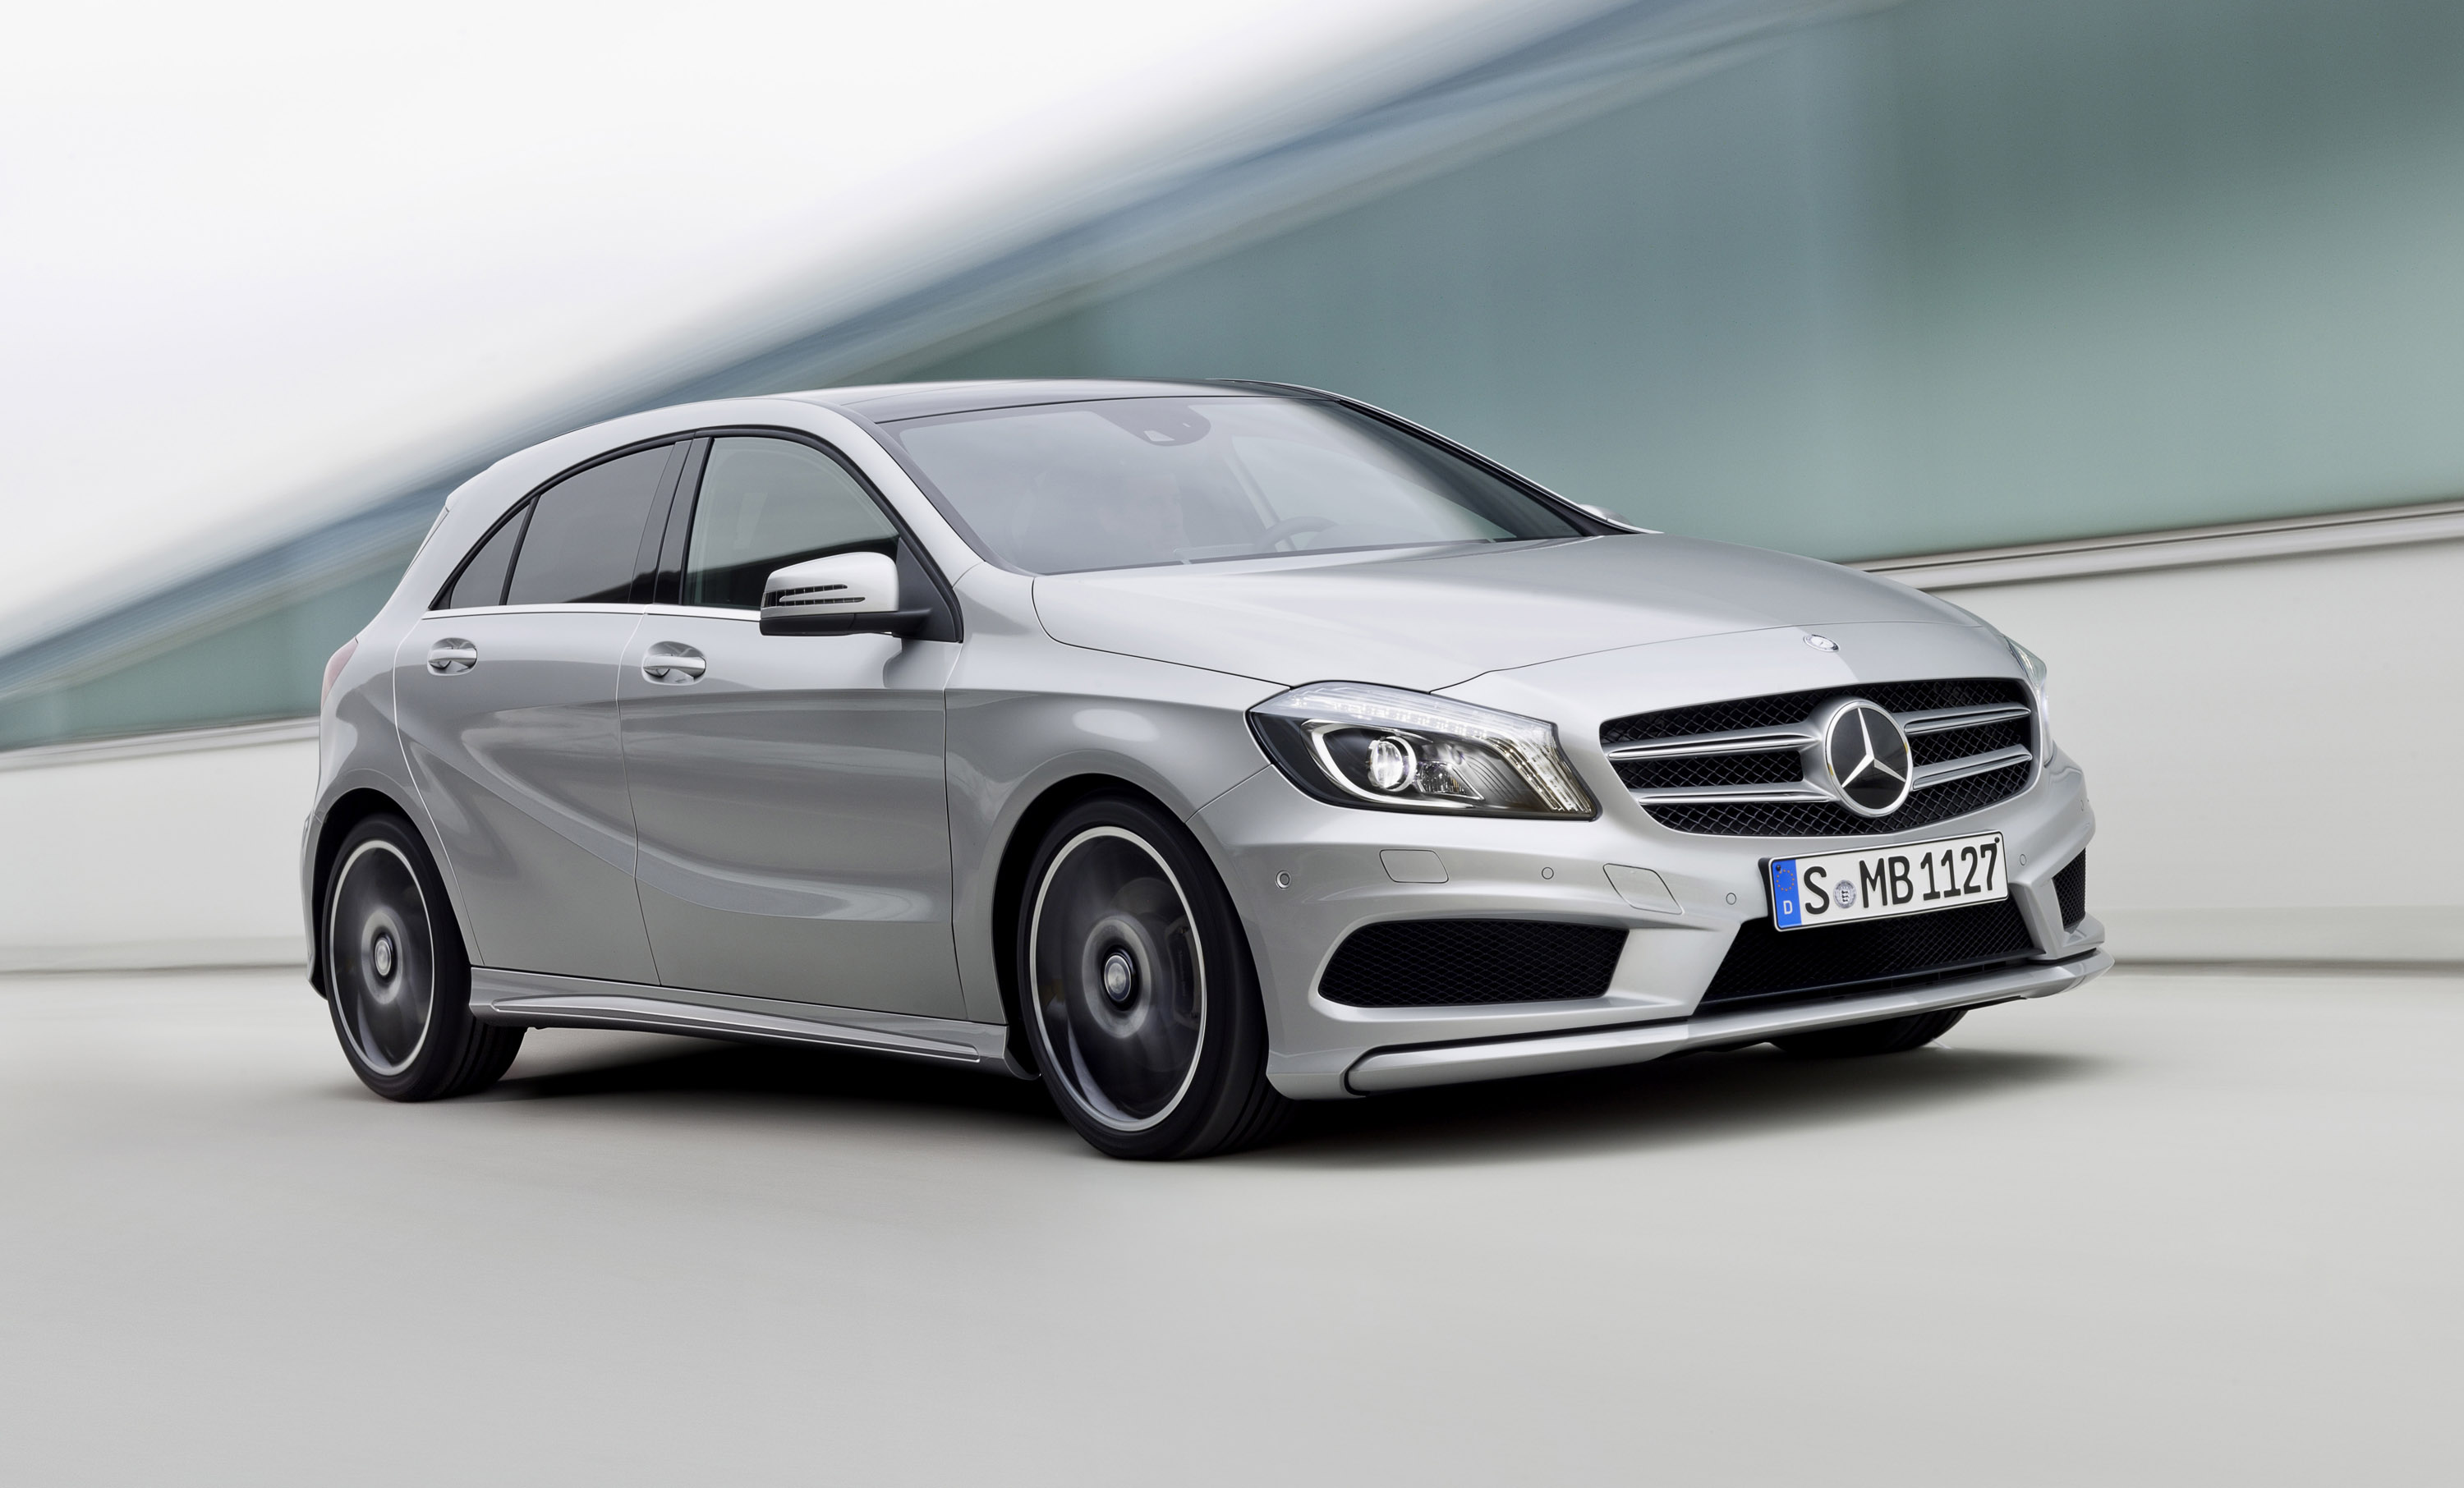 Mercedes benz a class wins auto bild design award for Mercedes benz a class price